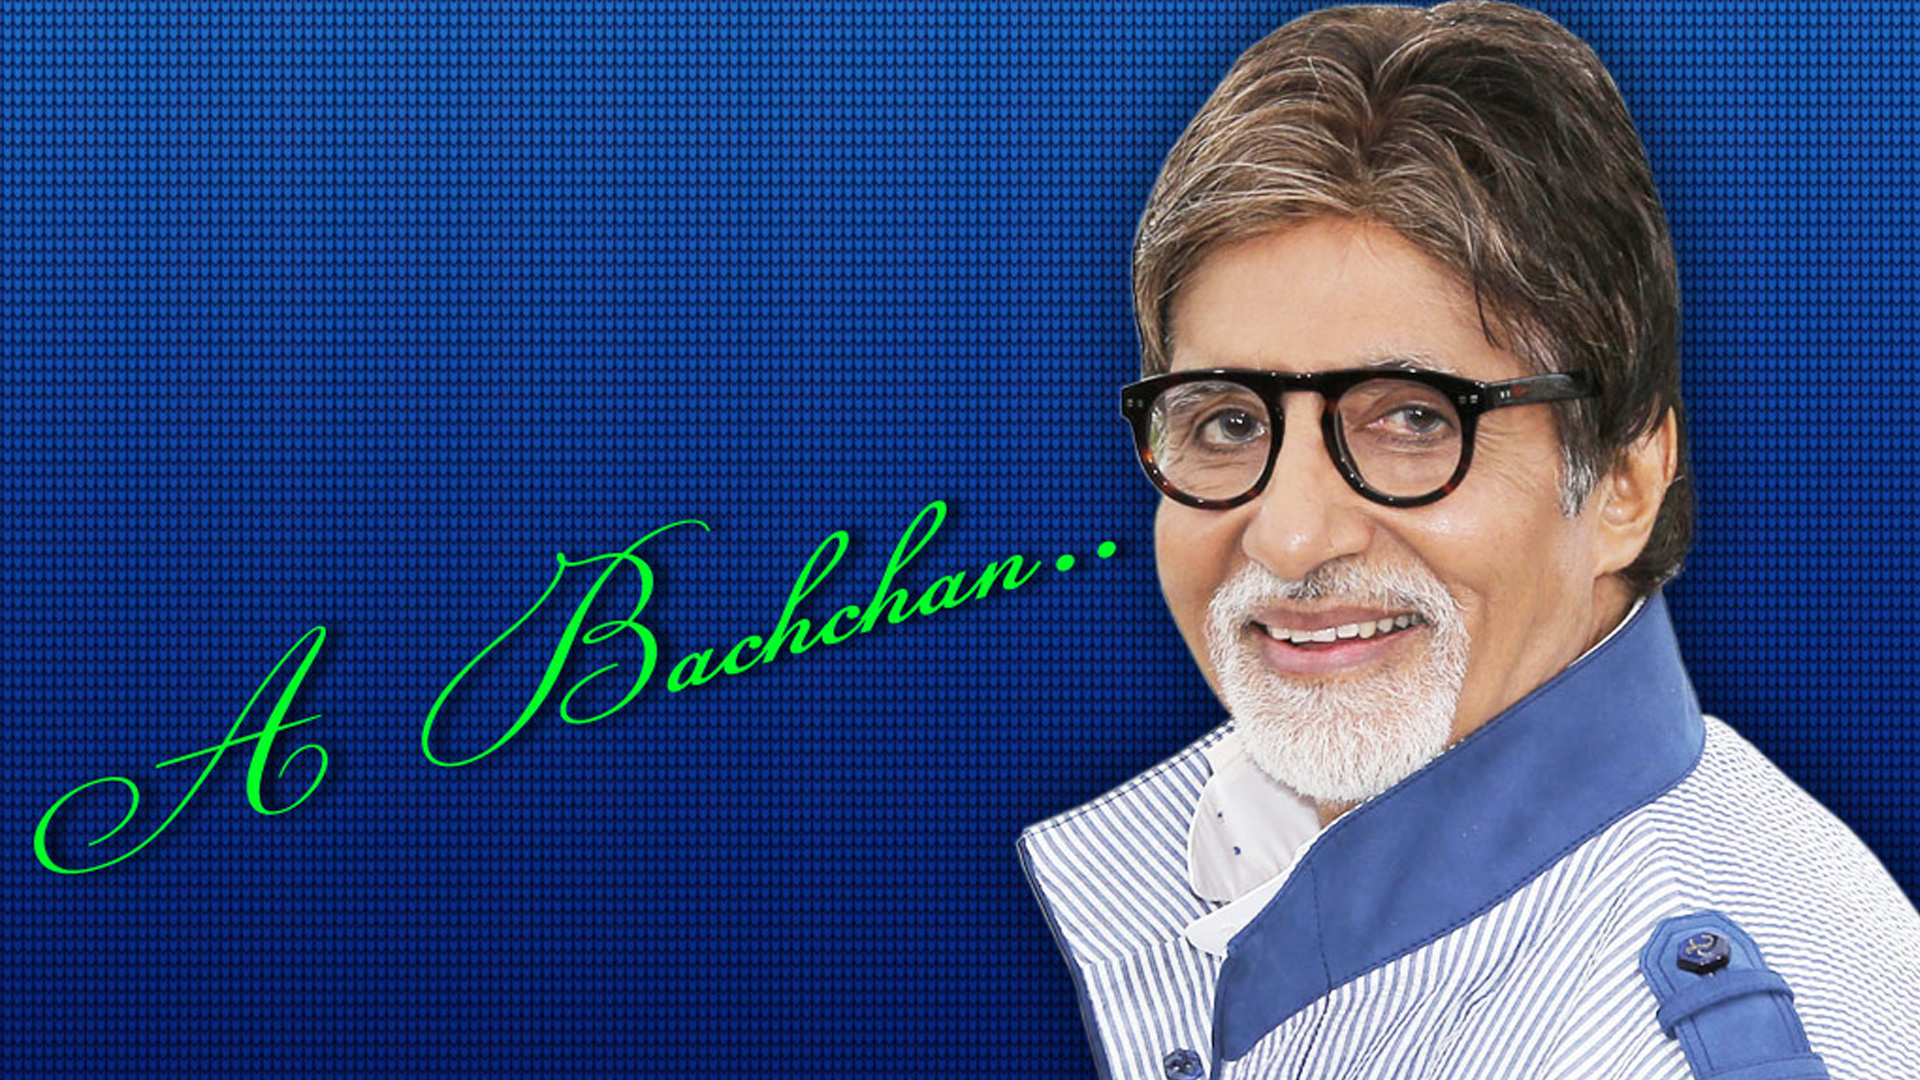 Amitabh Bachchan New Stills | Wallpaper 1of 5 | Amitabh Bachchan Wallpapers | Amitabh Bachchan stills